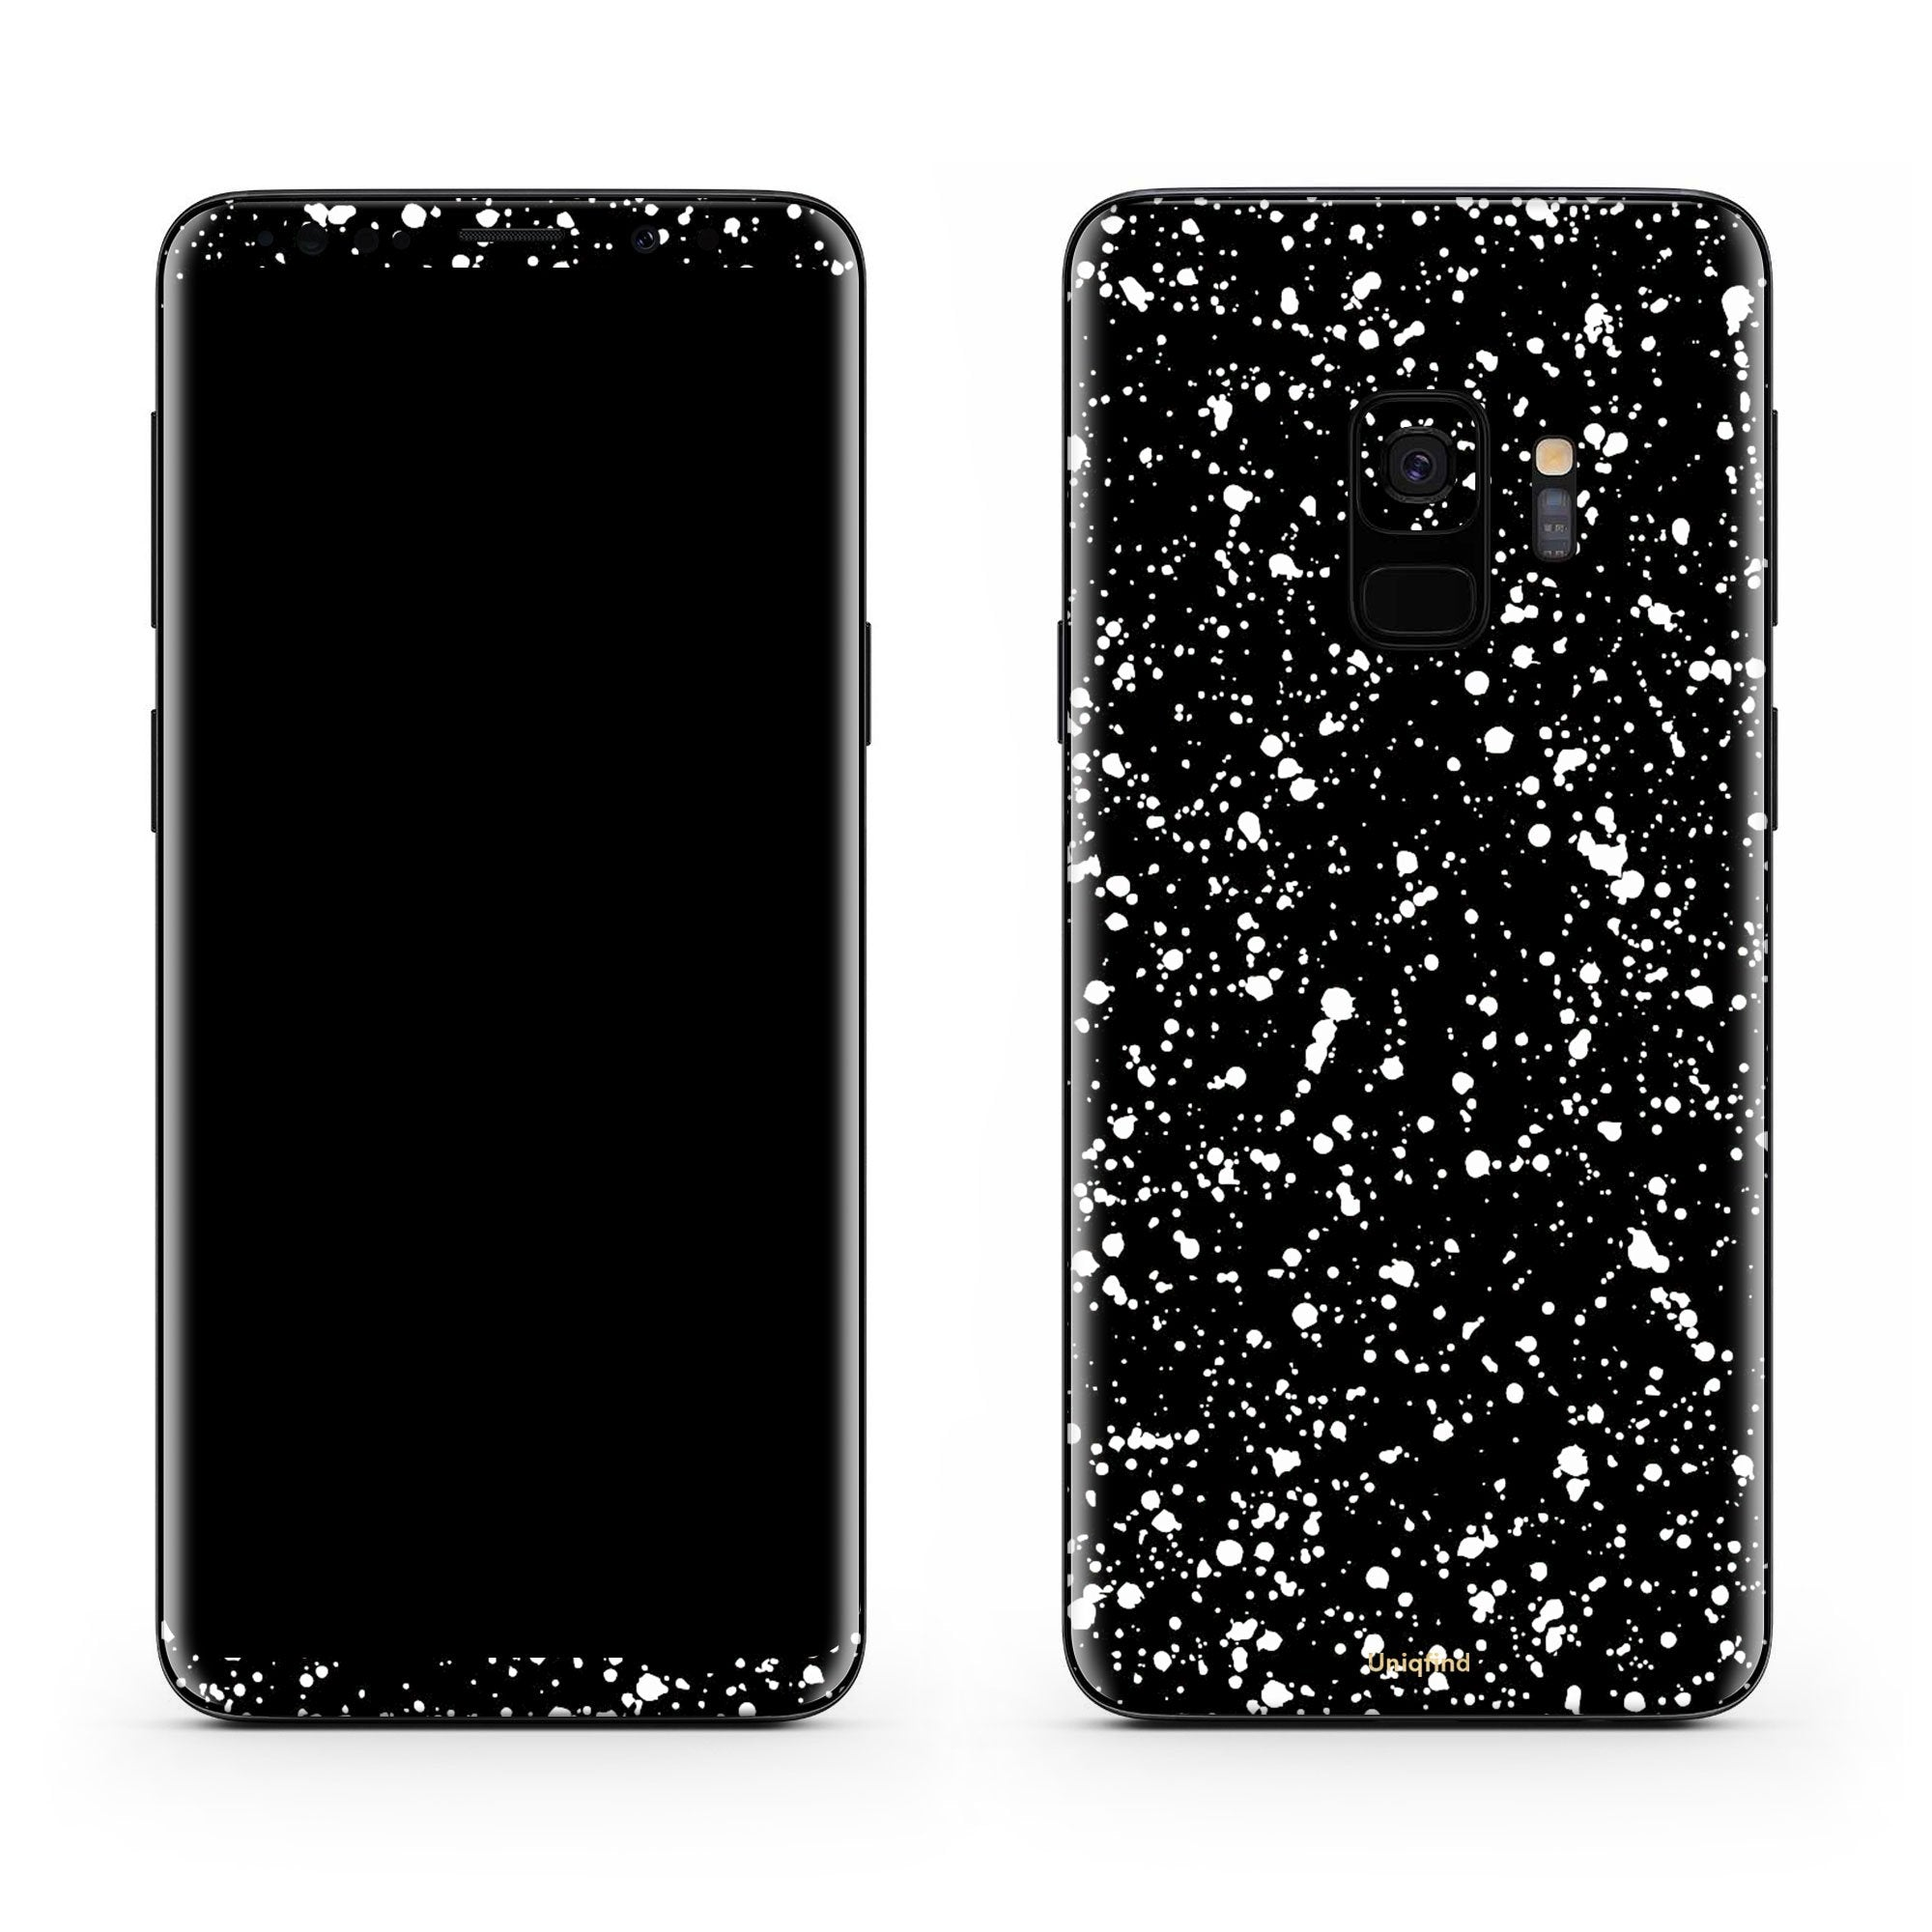 Black Speckle Galaxy S9 Plus Skin + Case